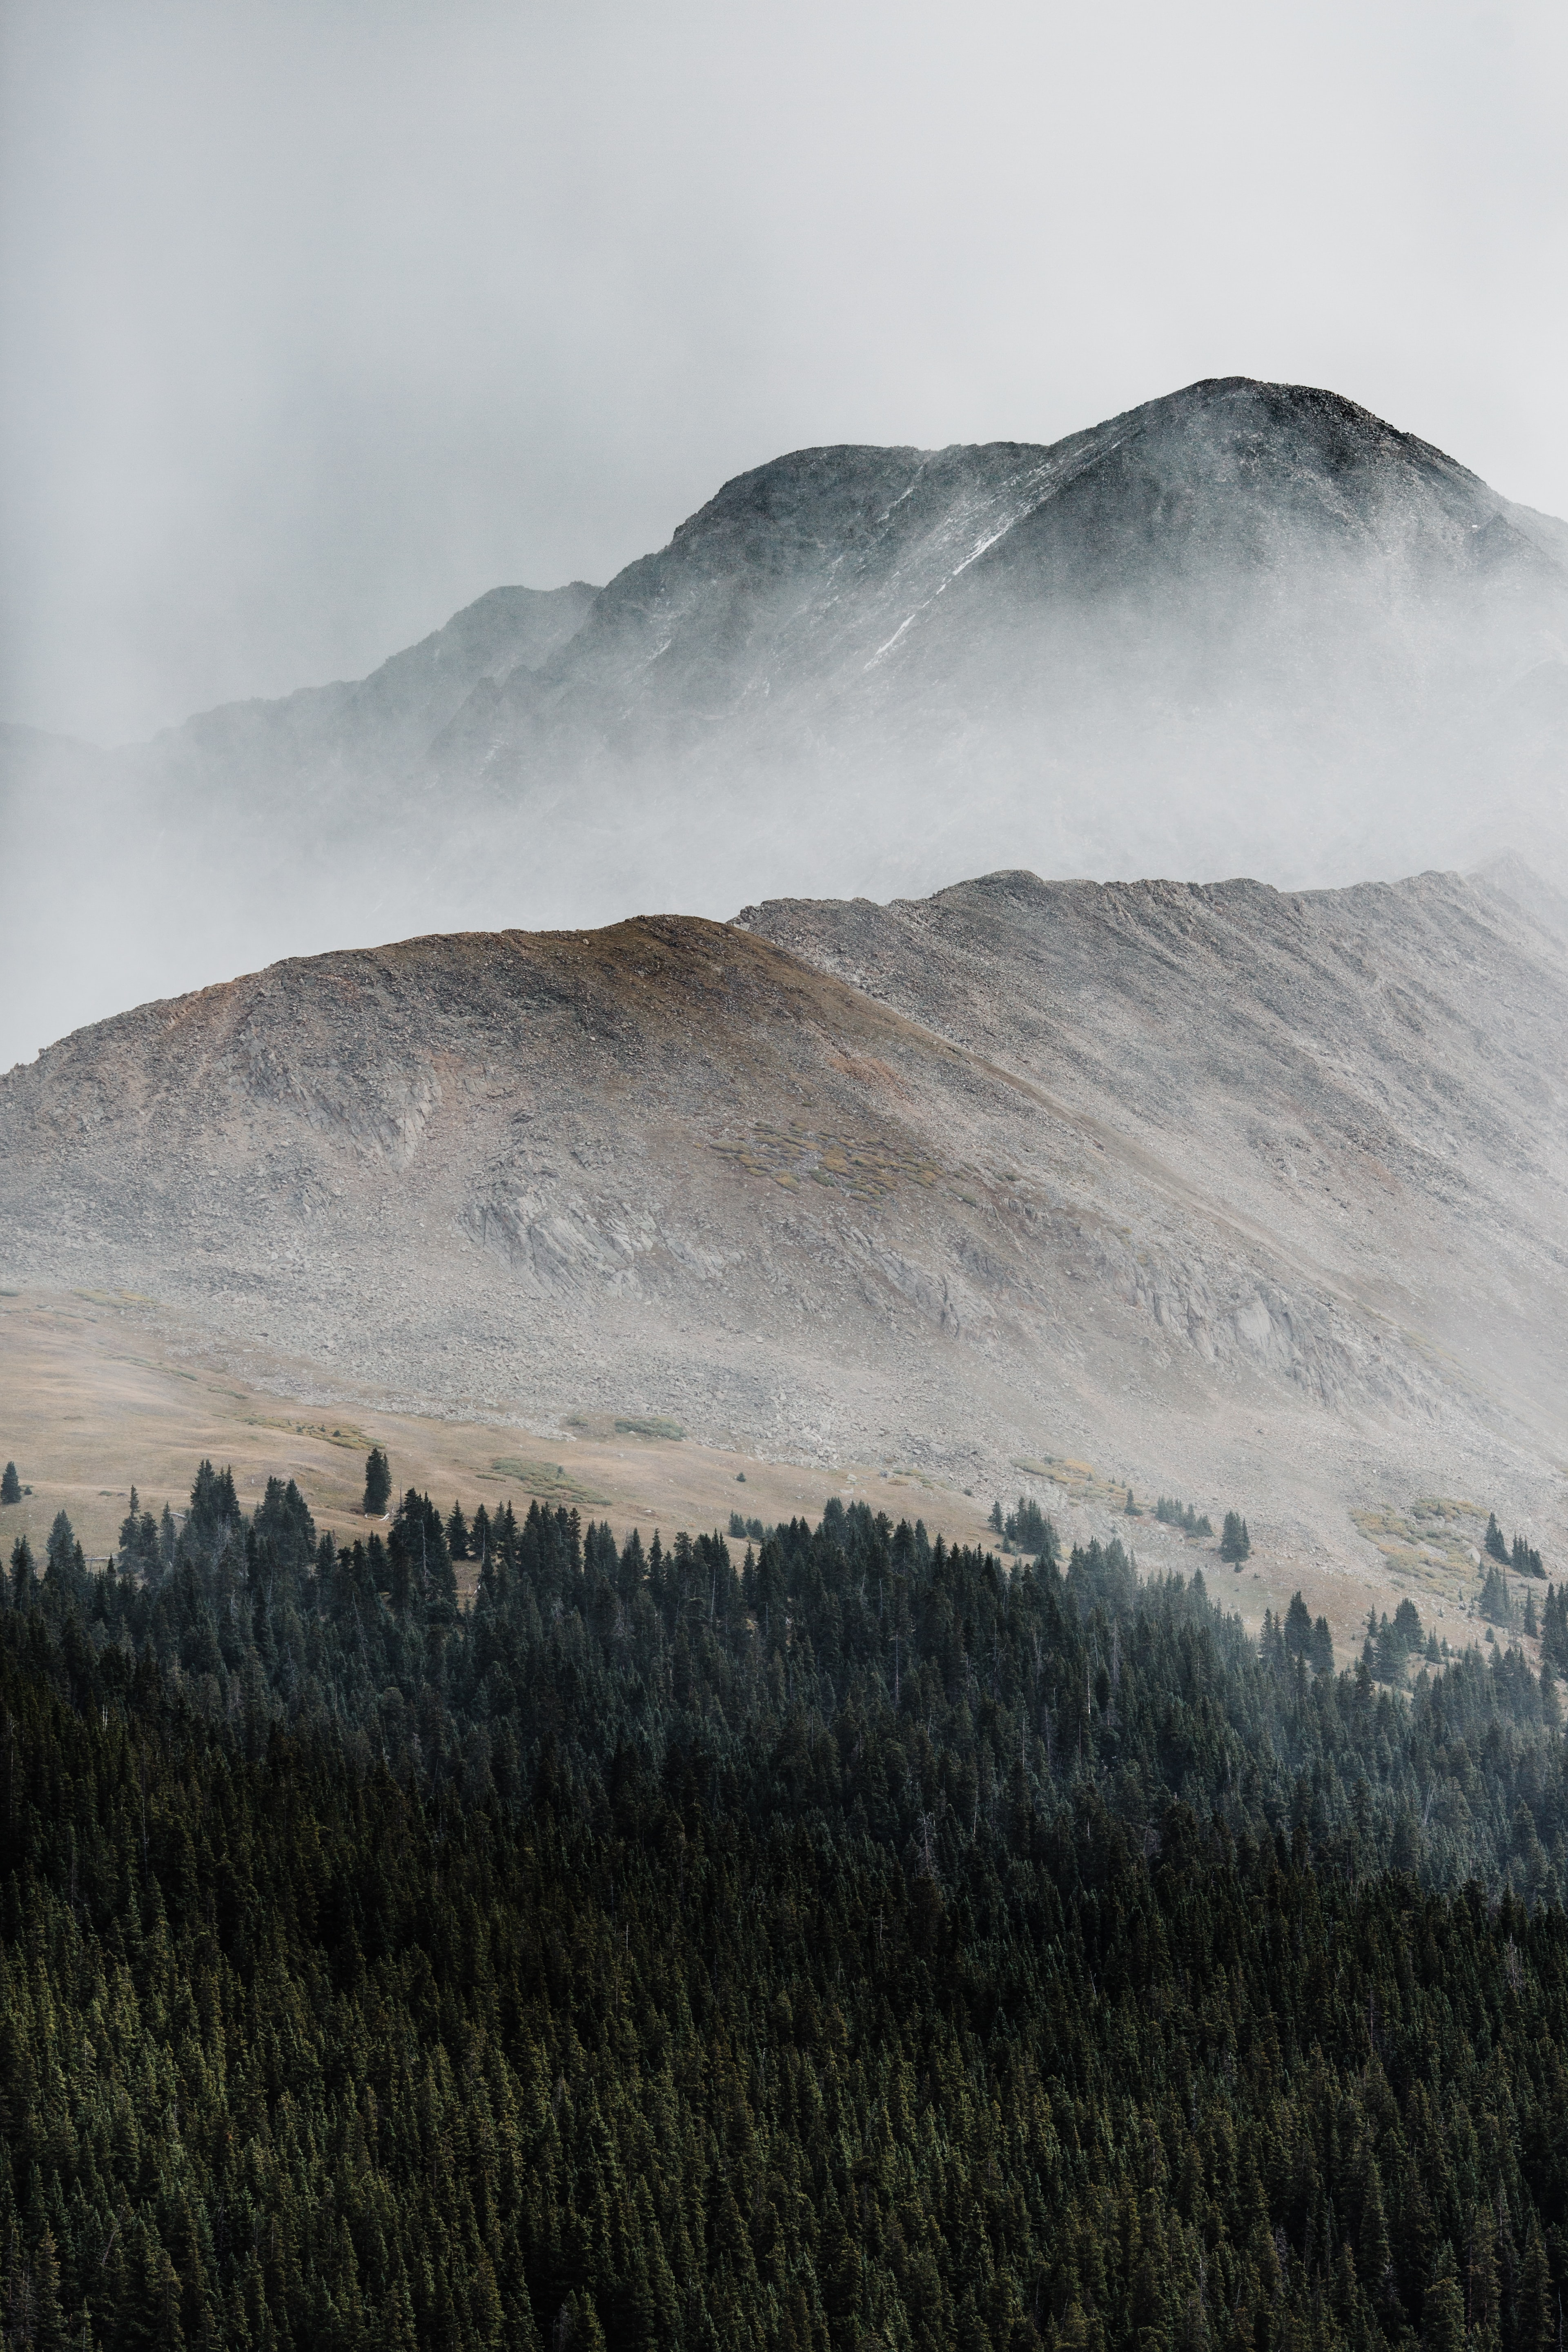 pine trees and rocky mountain surrounded with fog